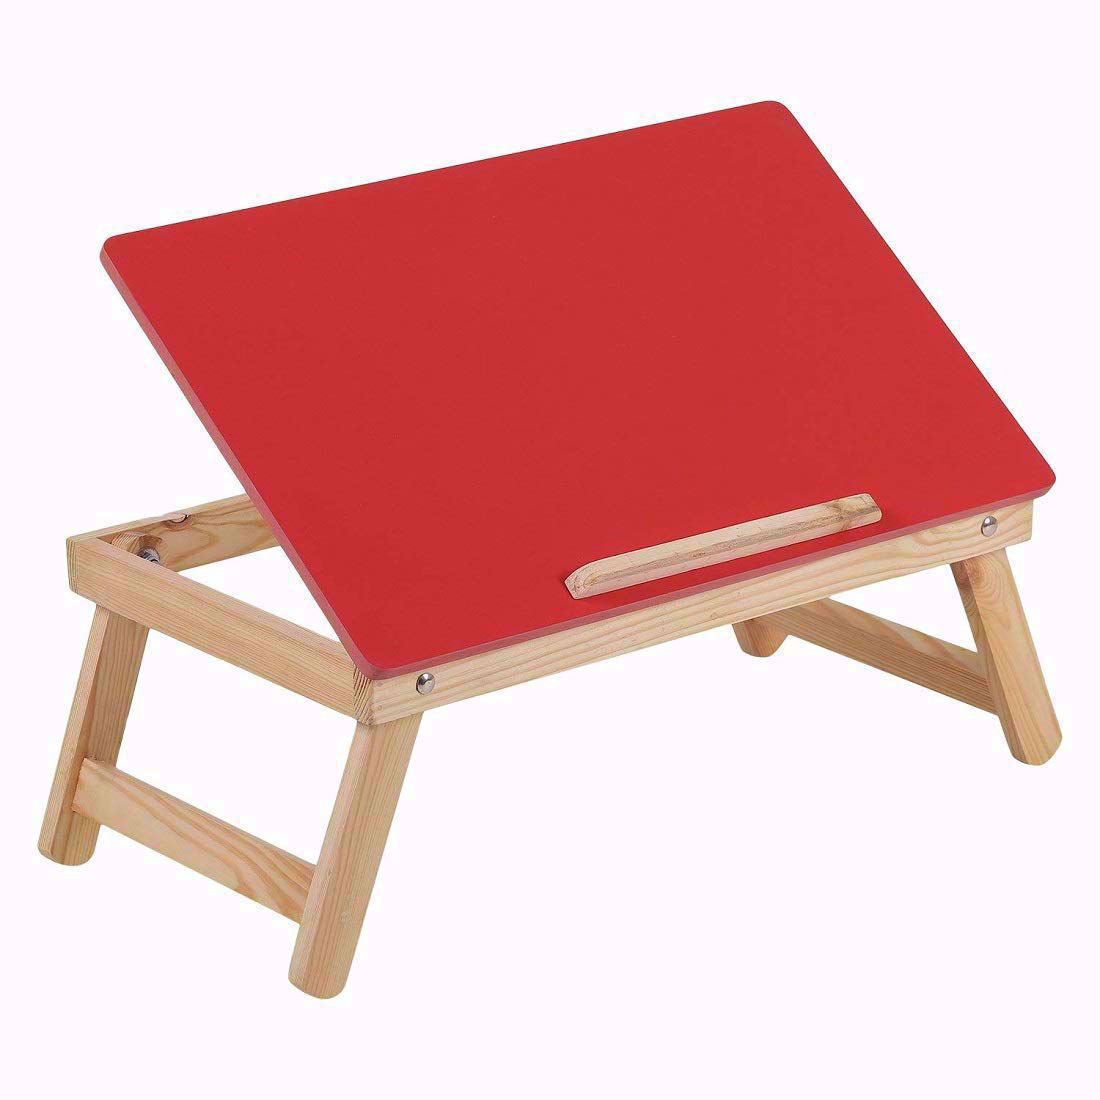 Laptop Desk Bed Student Study Meal Table -Red